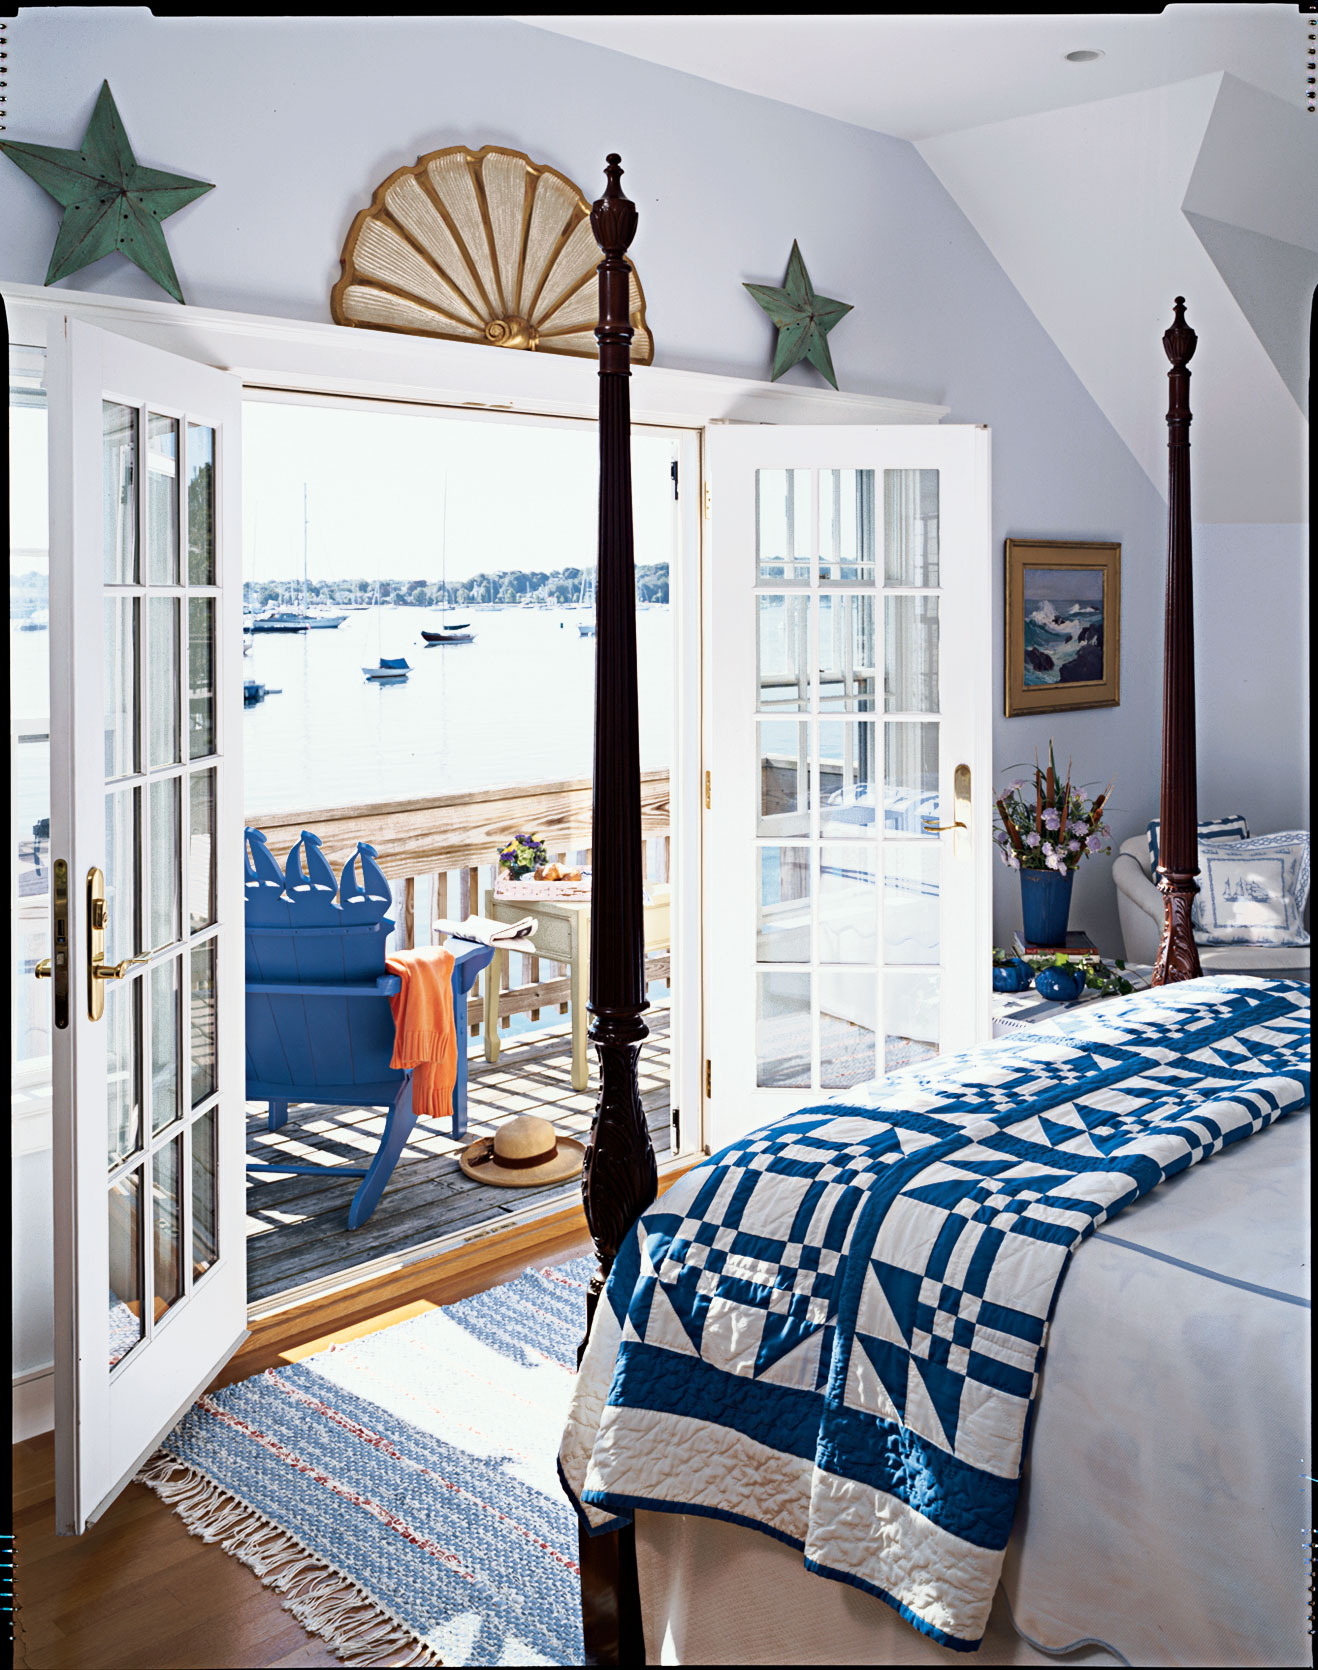 Nothing is more classically coastal than a blue-and-white color palette. The bright white provides the perfect base for deep blue accents, resulting in a crisp combo that's always right on trend. On the coast, throw open glass French doors to infuse your space with the salty breeze.